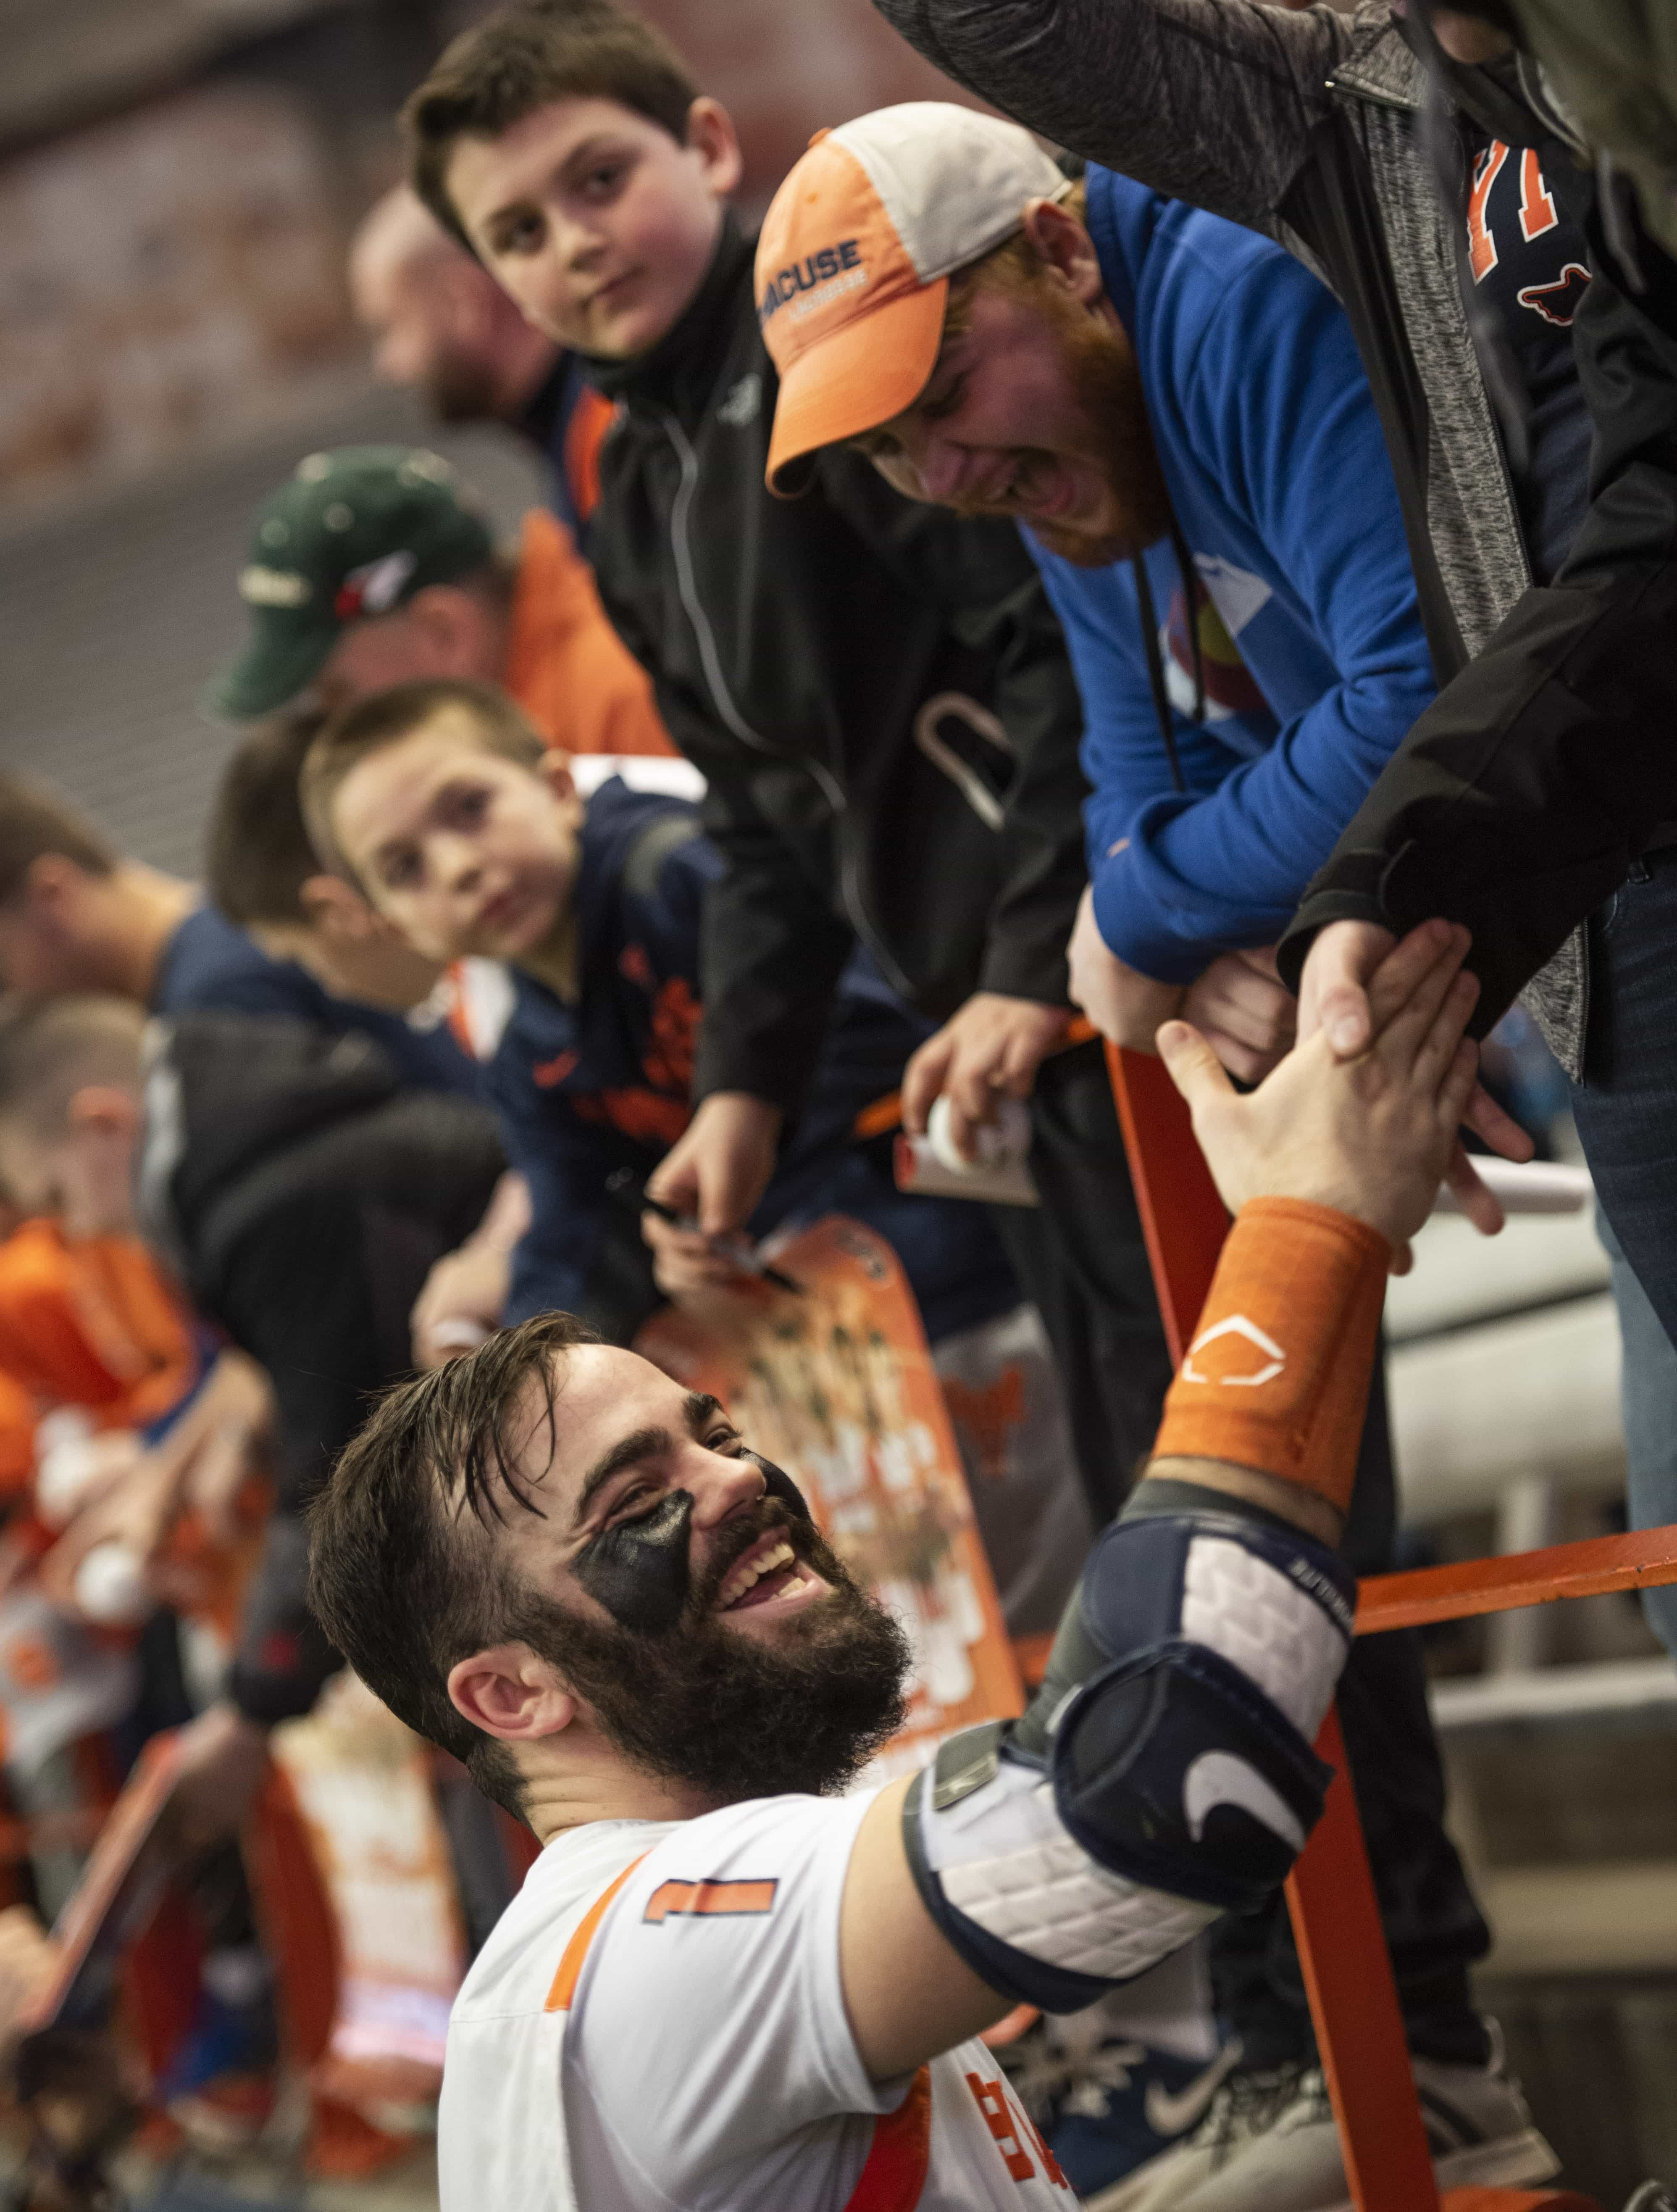 Senior Bradley Voigt shakes hands with fans after the Orange's 10-8 win over Army.